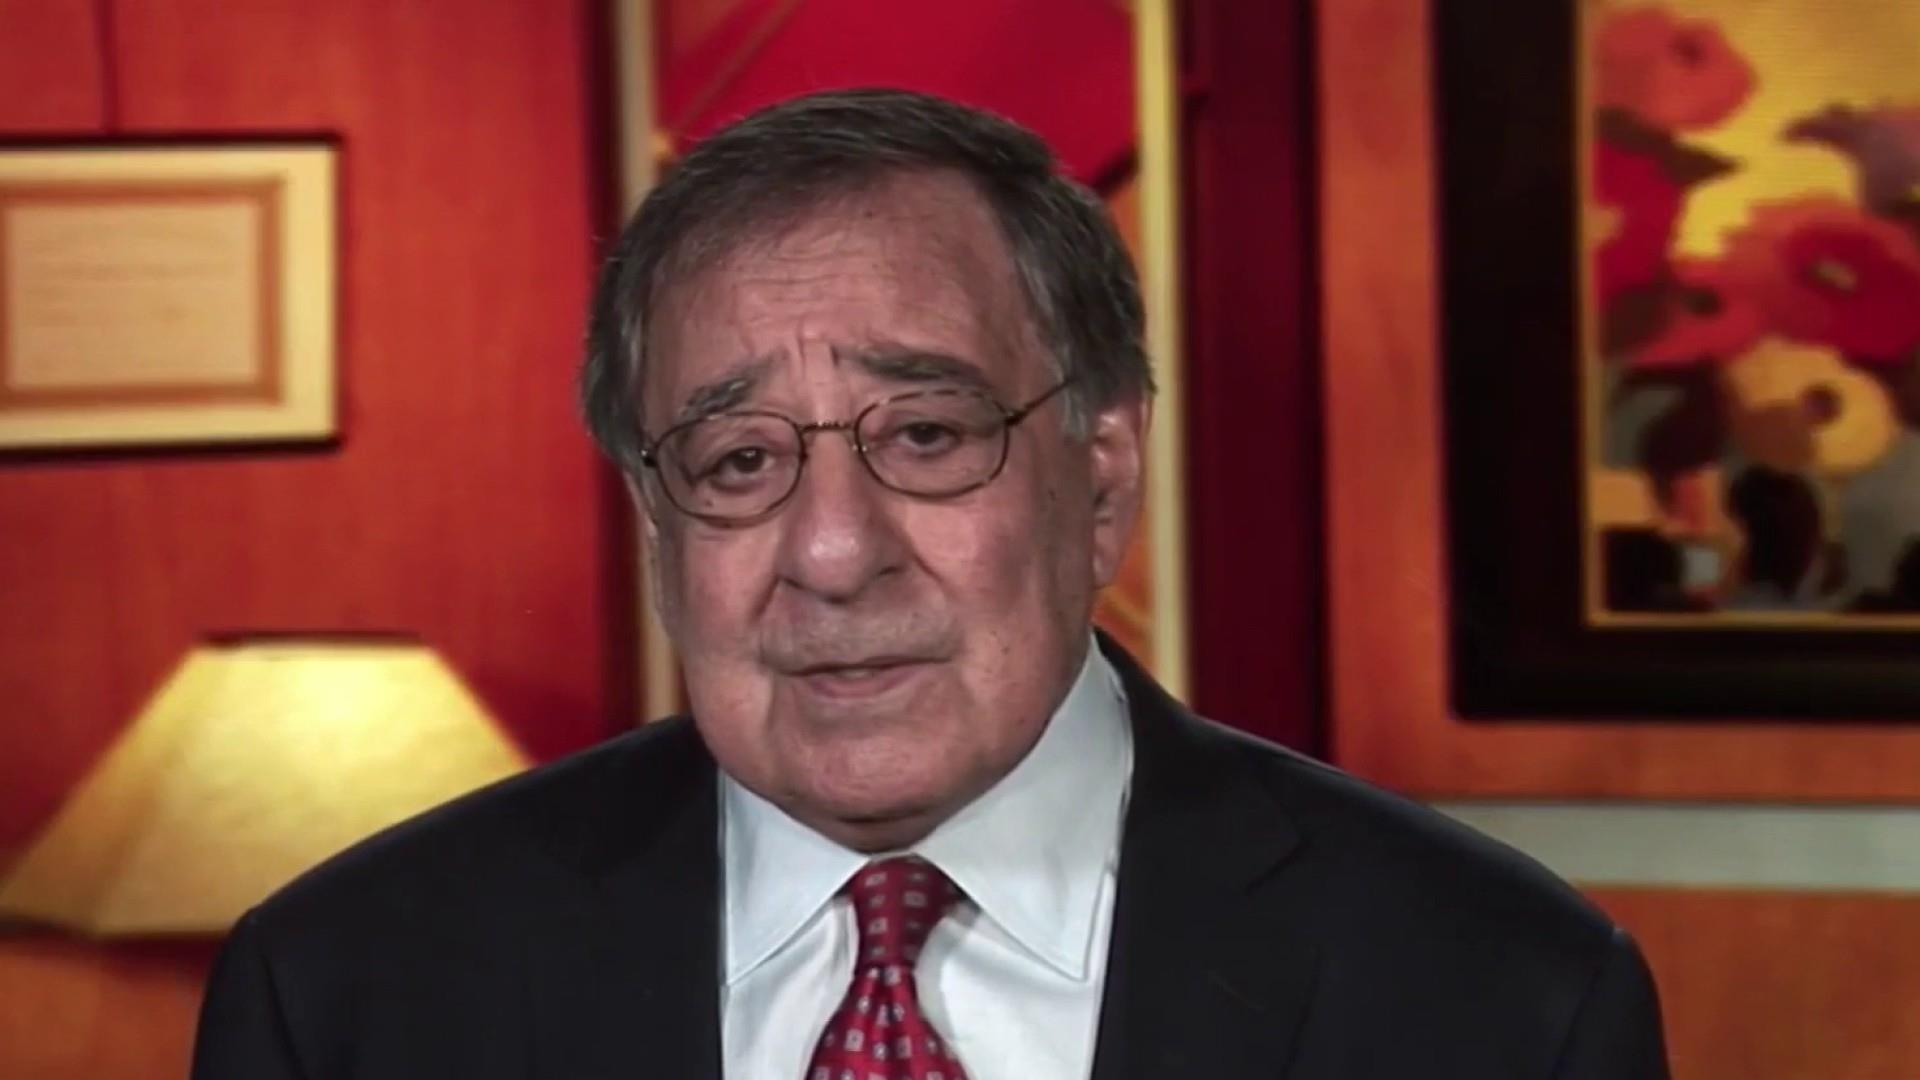 Leon Panetta: Trump weakening his WH by undermining top officials